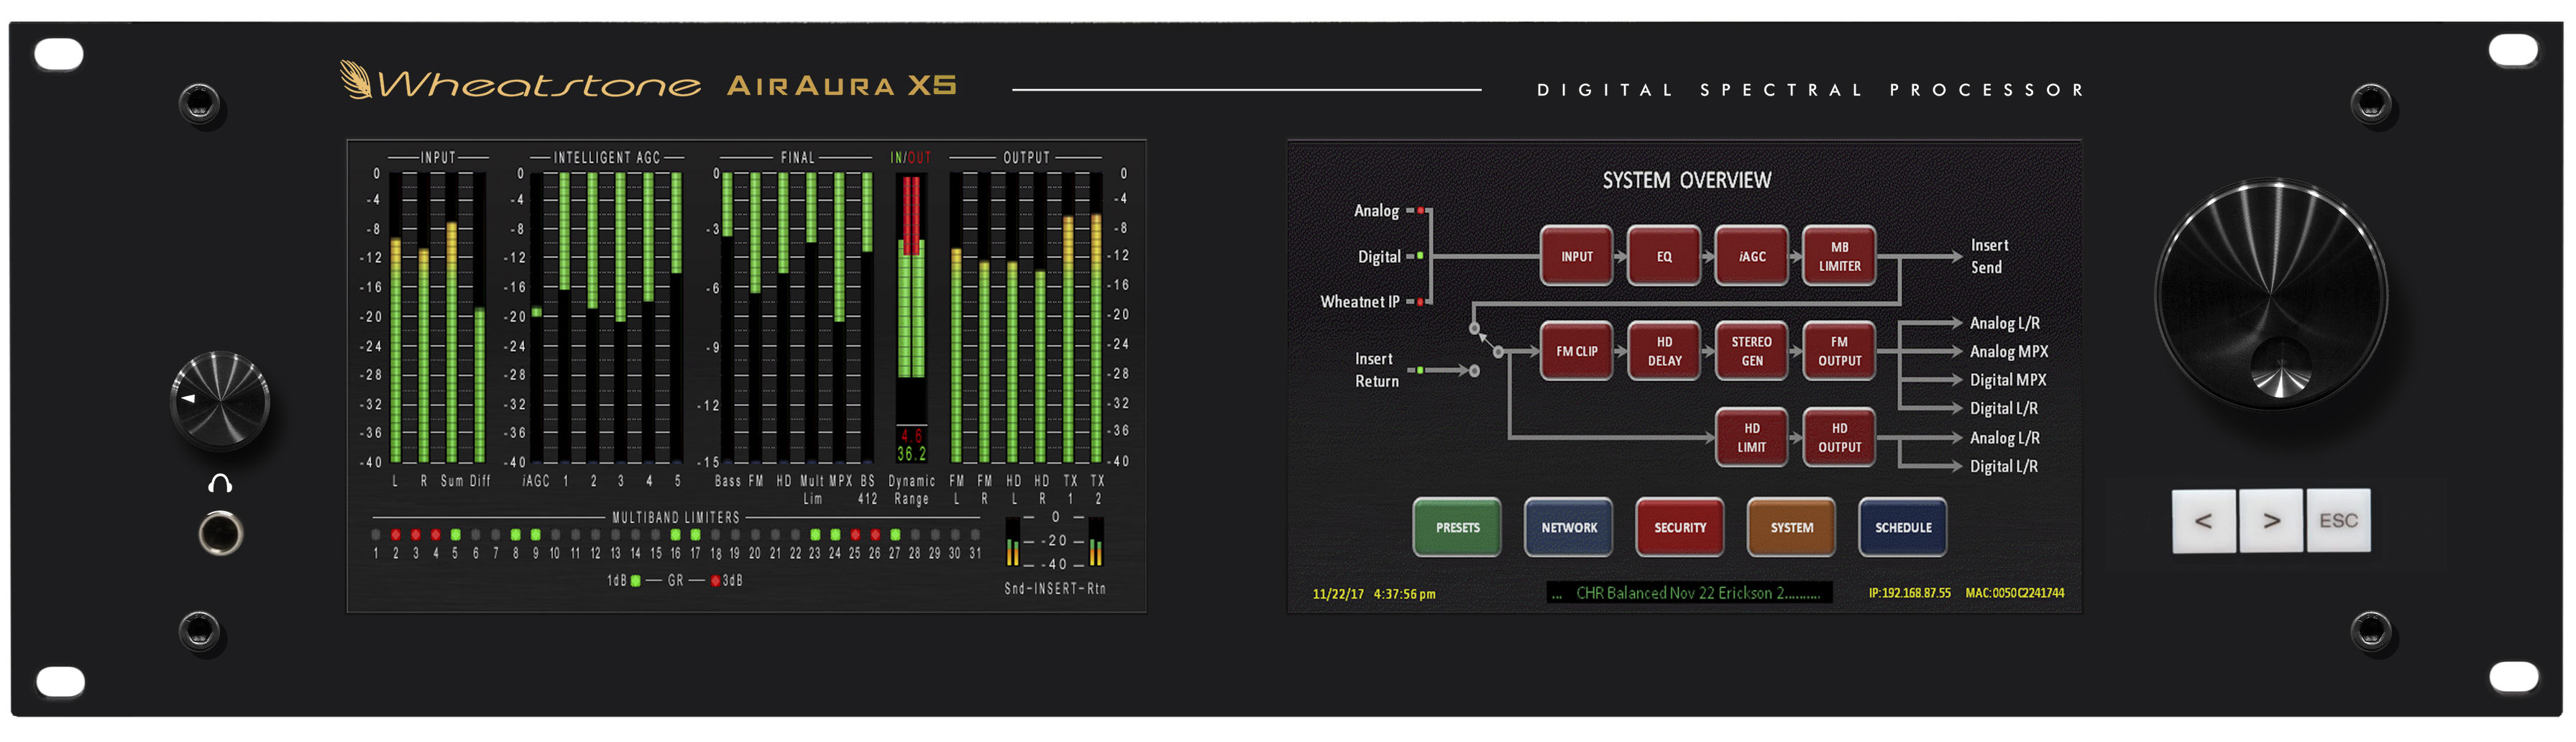 WHEATSTONE SHOWCASES X5 FLAGSHIP FM/HD AUDIO PROCESSOR AT IBC